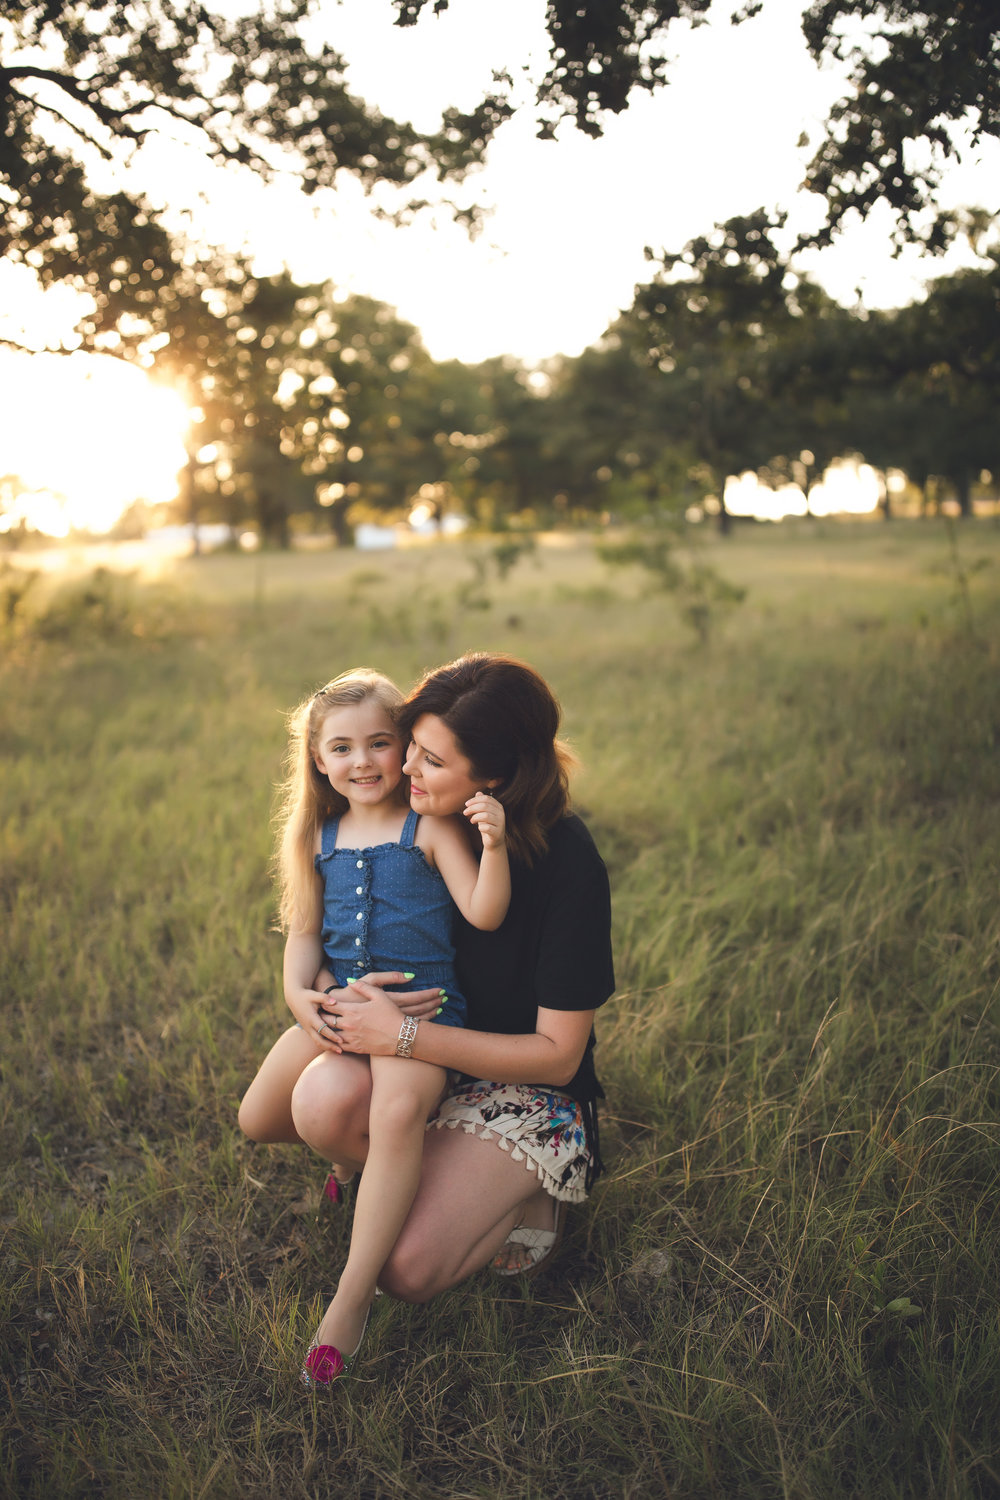 shelby-schiller-photography-family-daughter-on-mothers-lap-at-sunset